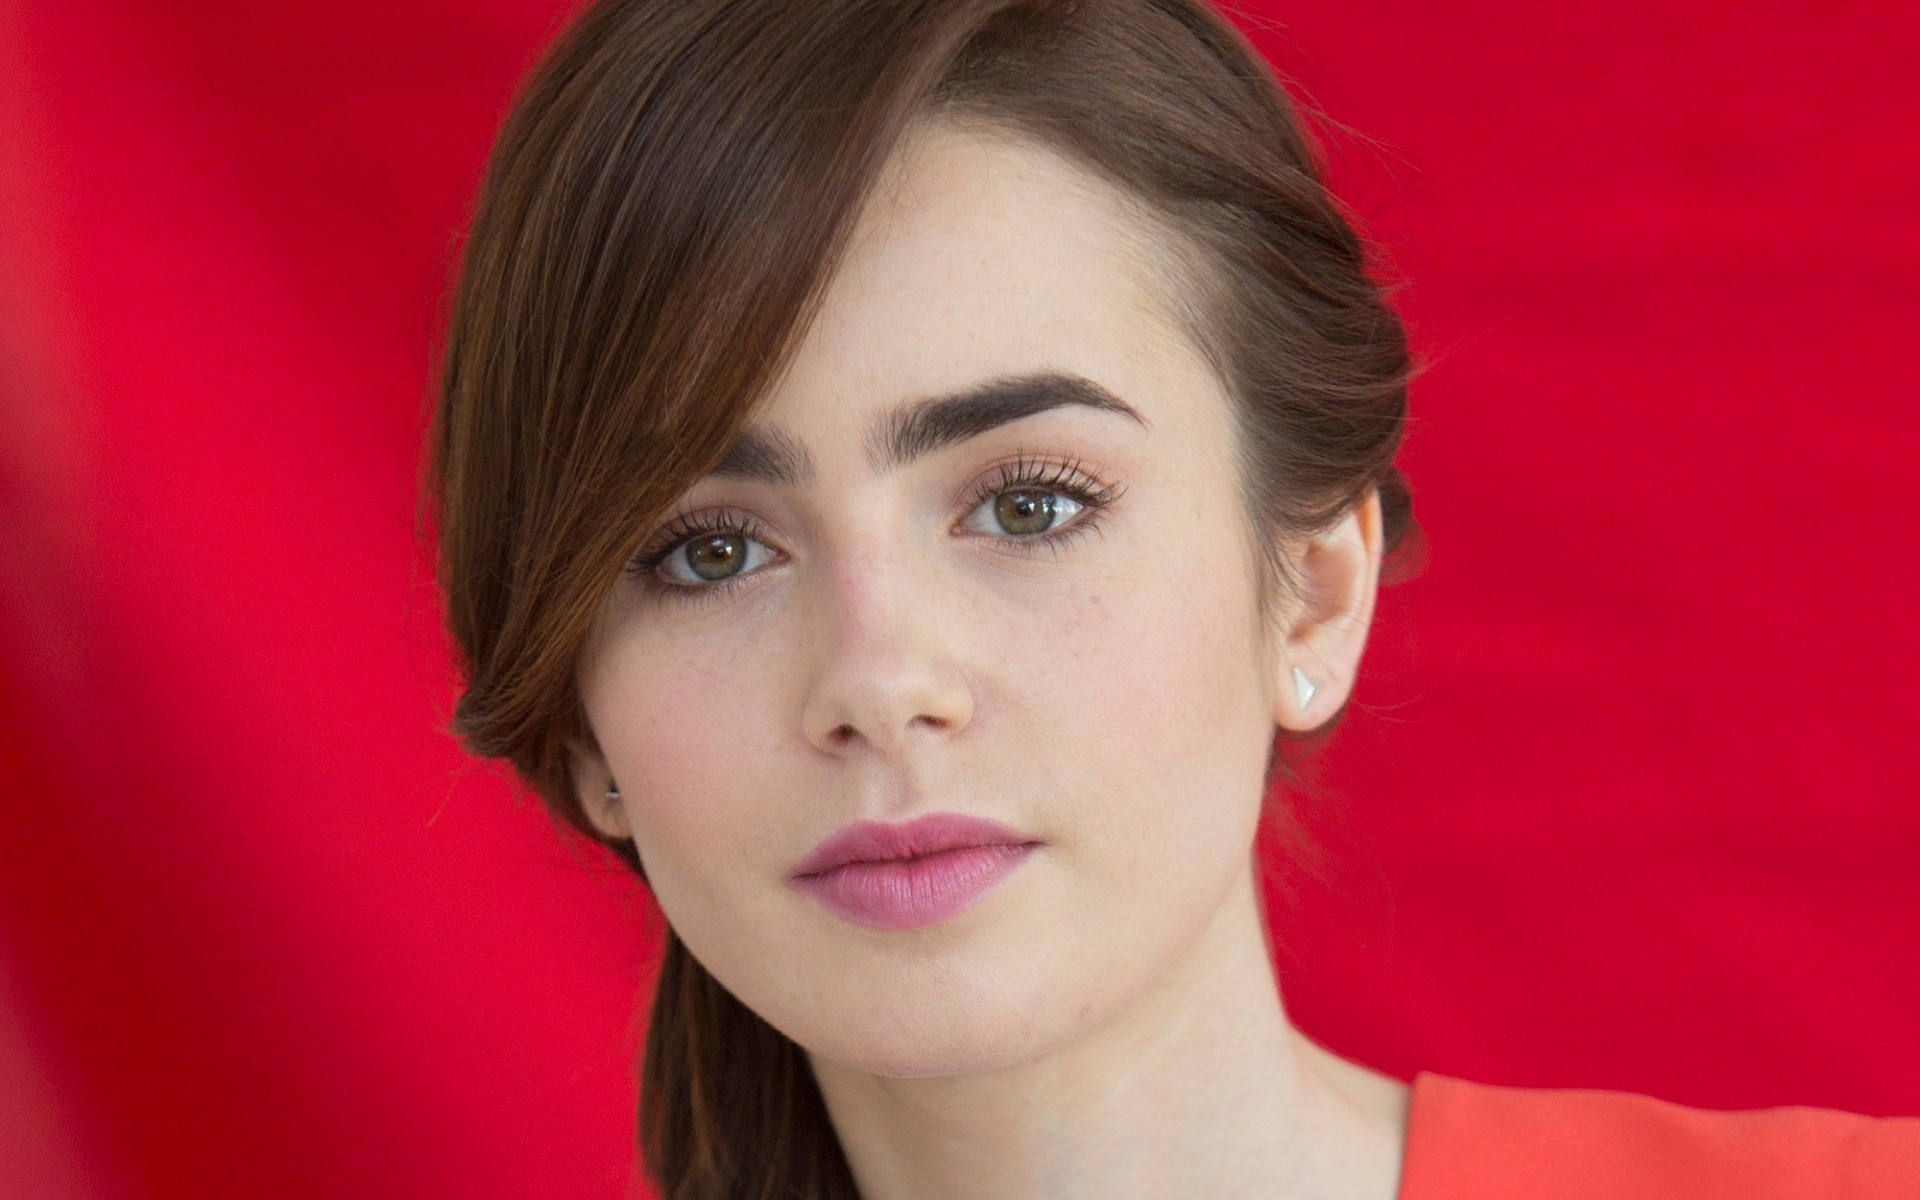 Lily Collins Wallpaper Full HD Pictures 1920x1200